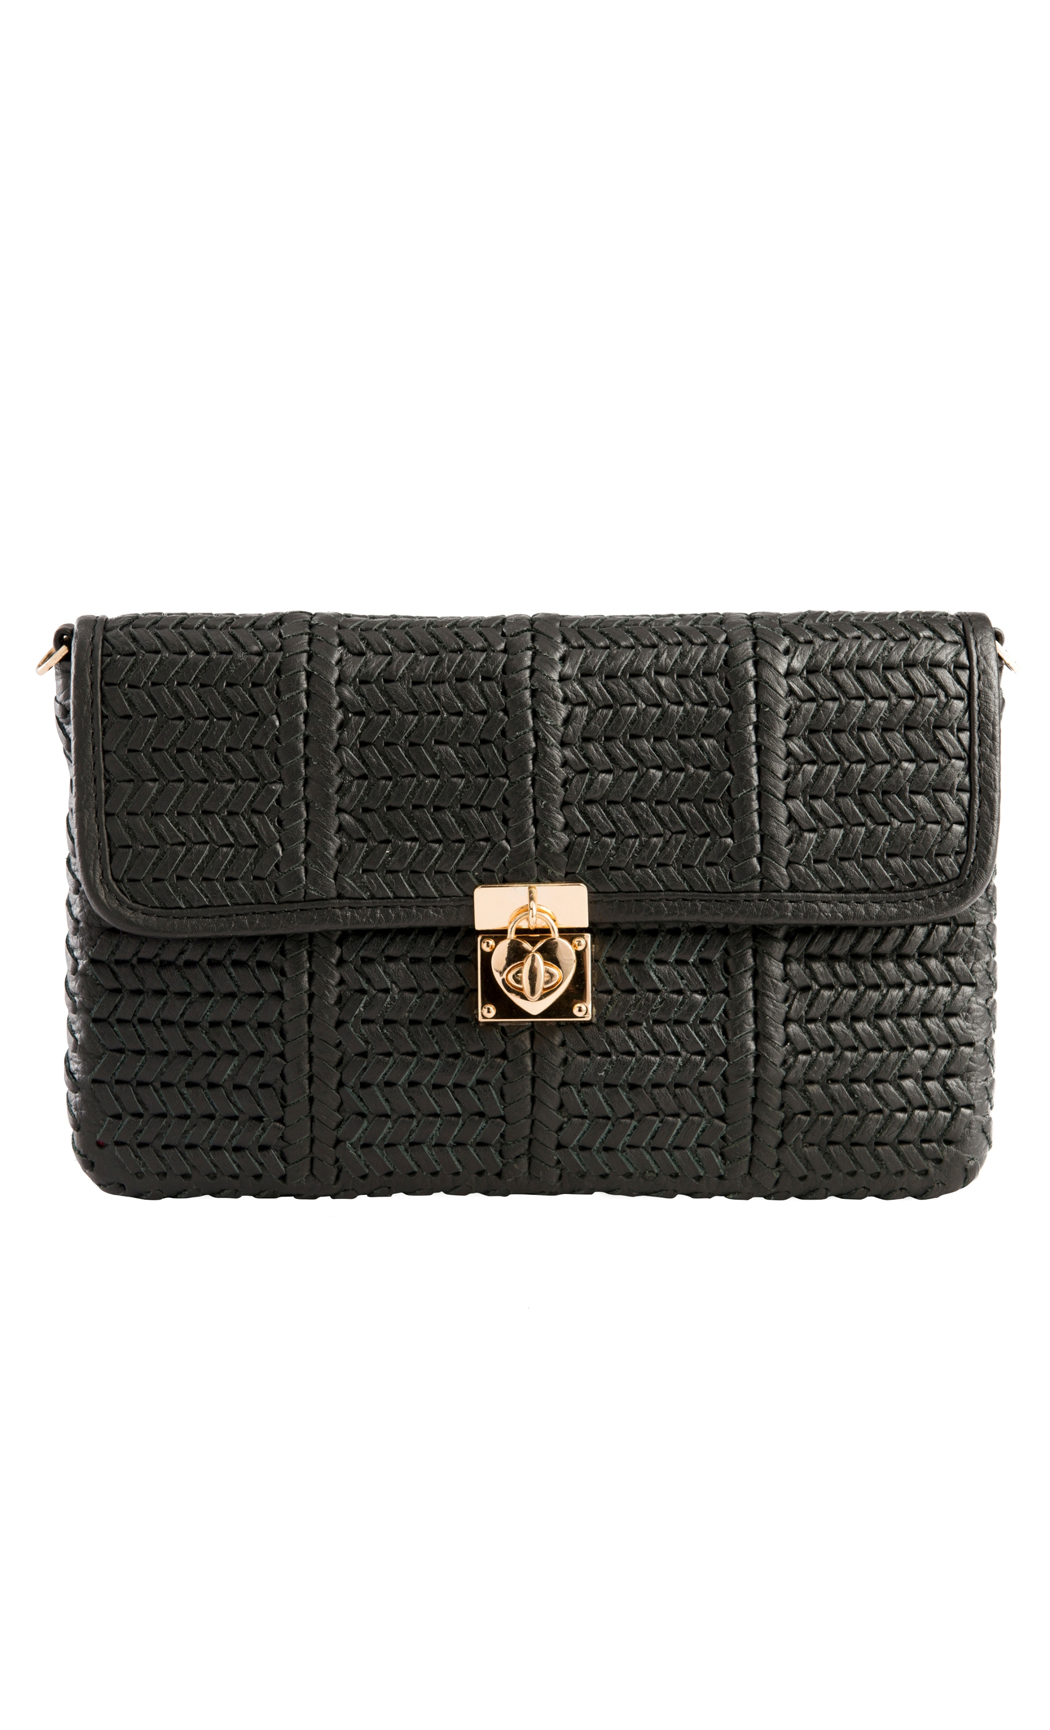 Classic Weave Woven Clutch with Heart Lock in Black. Buy Online